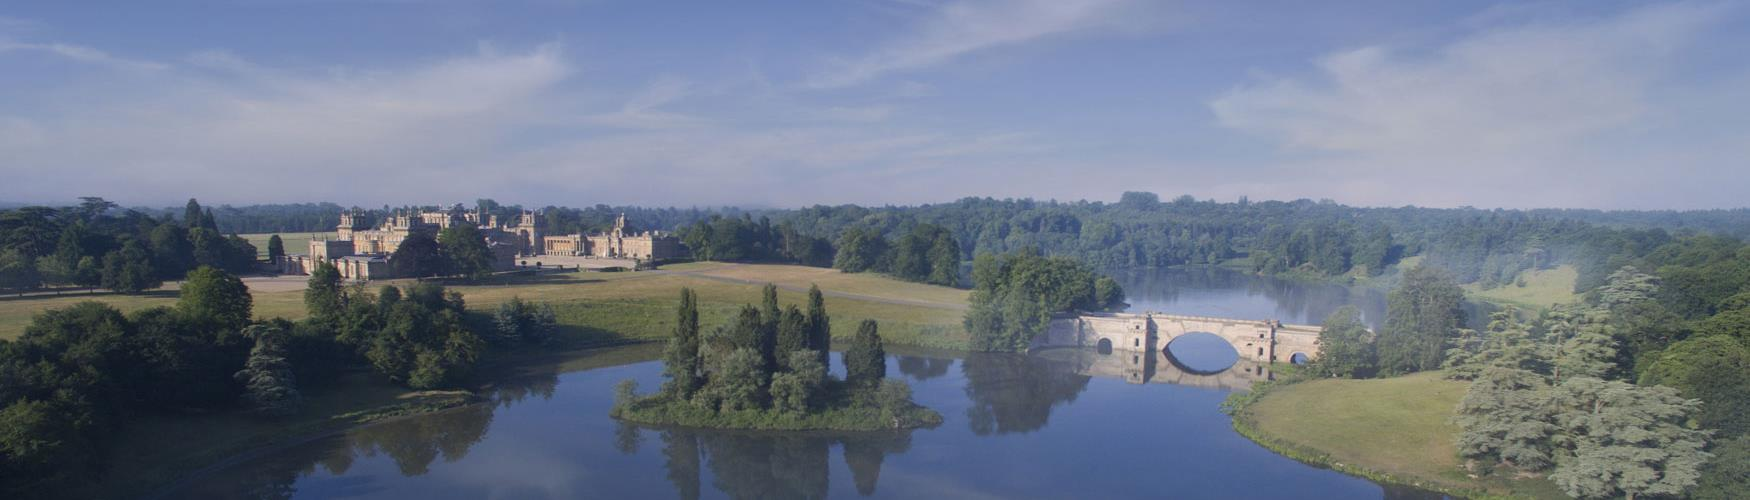 Blenheim Palace - just one of the attractions offering '2 for 1' entry during Cotswolds Welcome Open Weekend